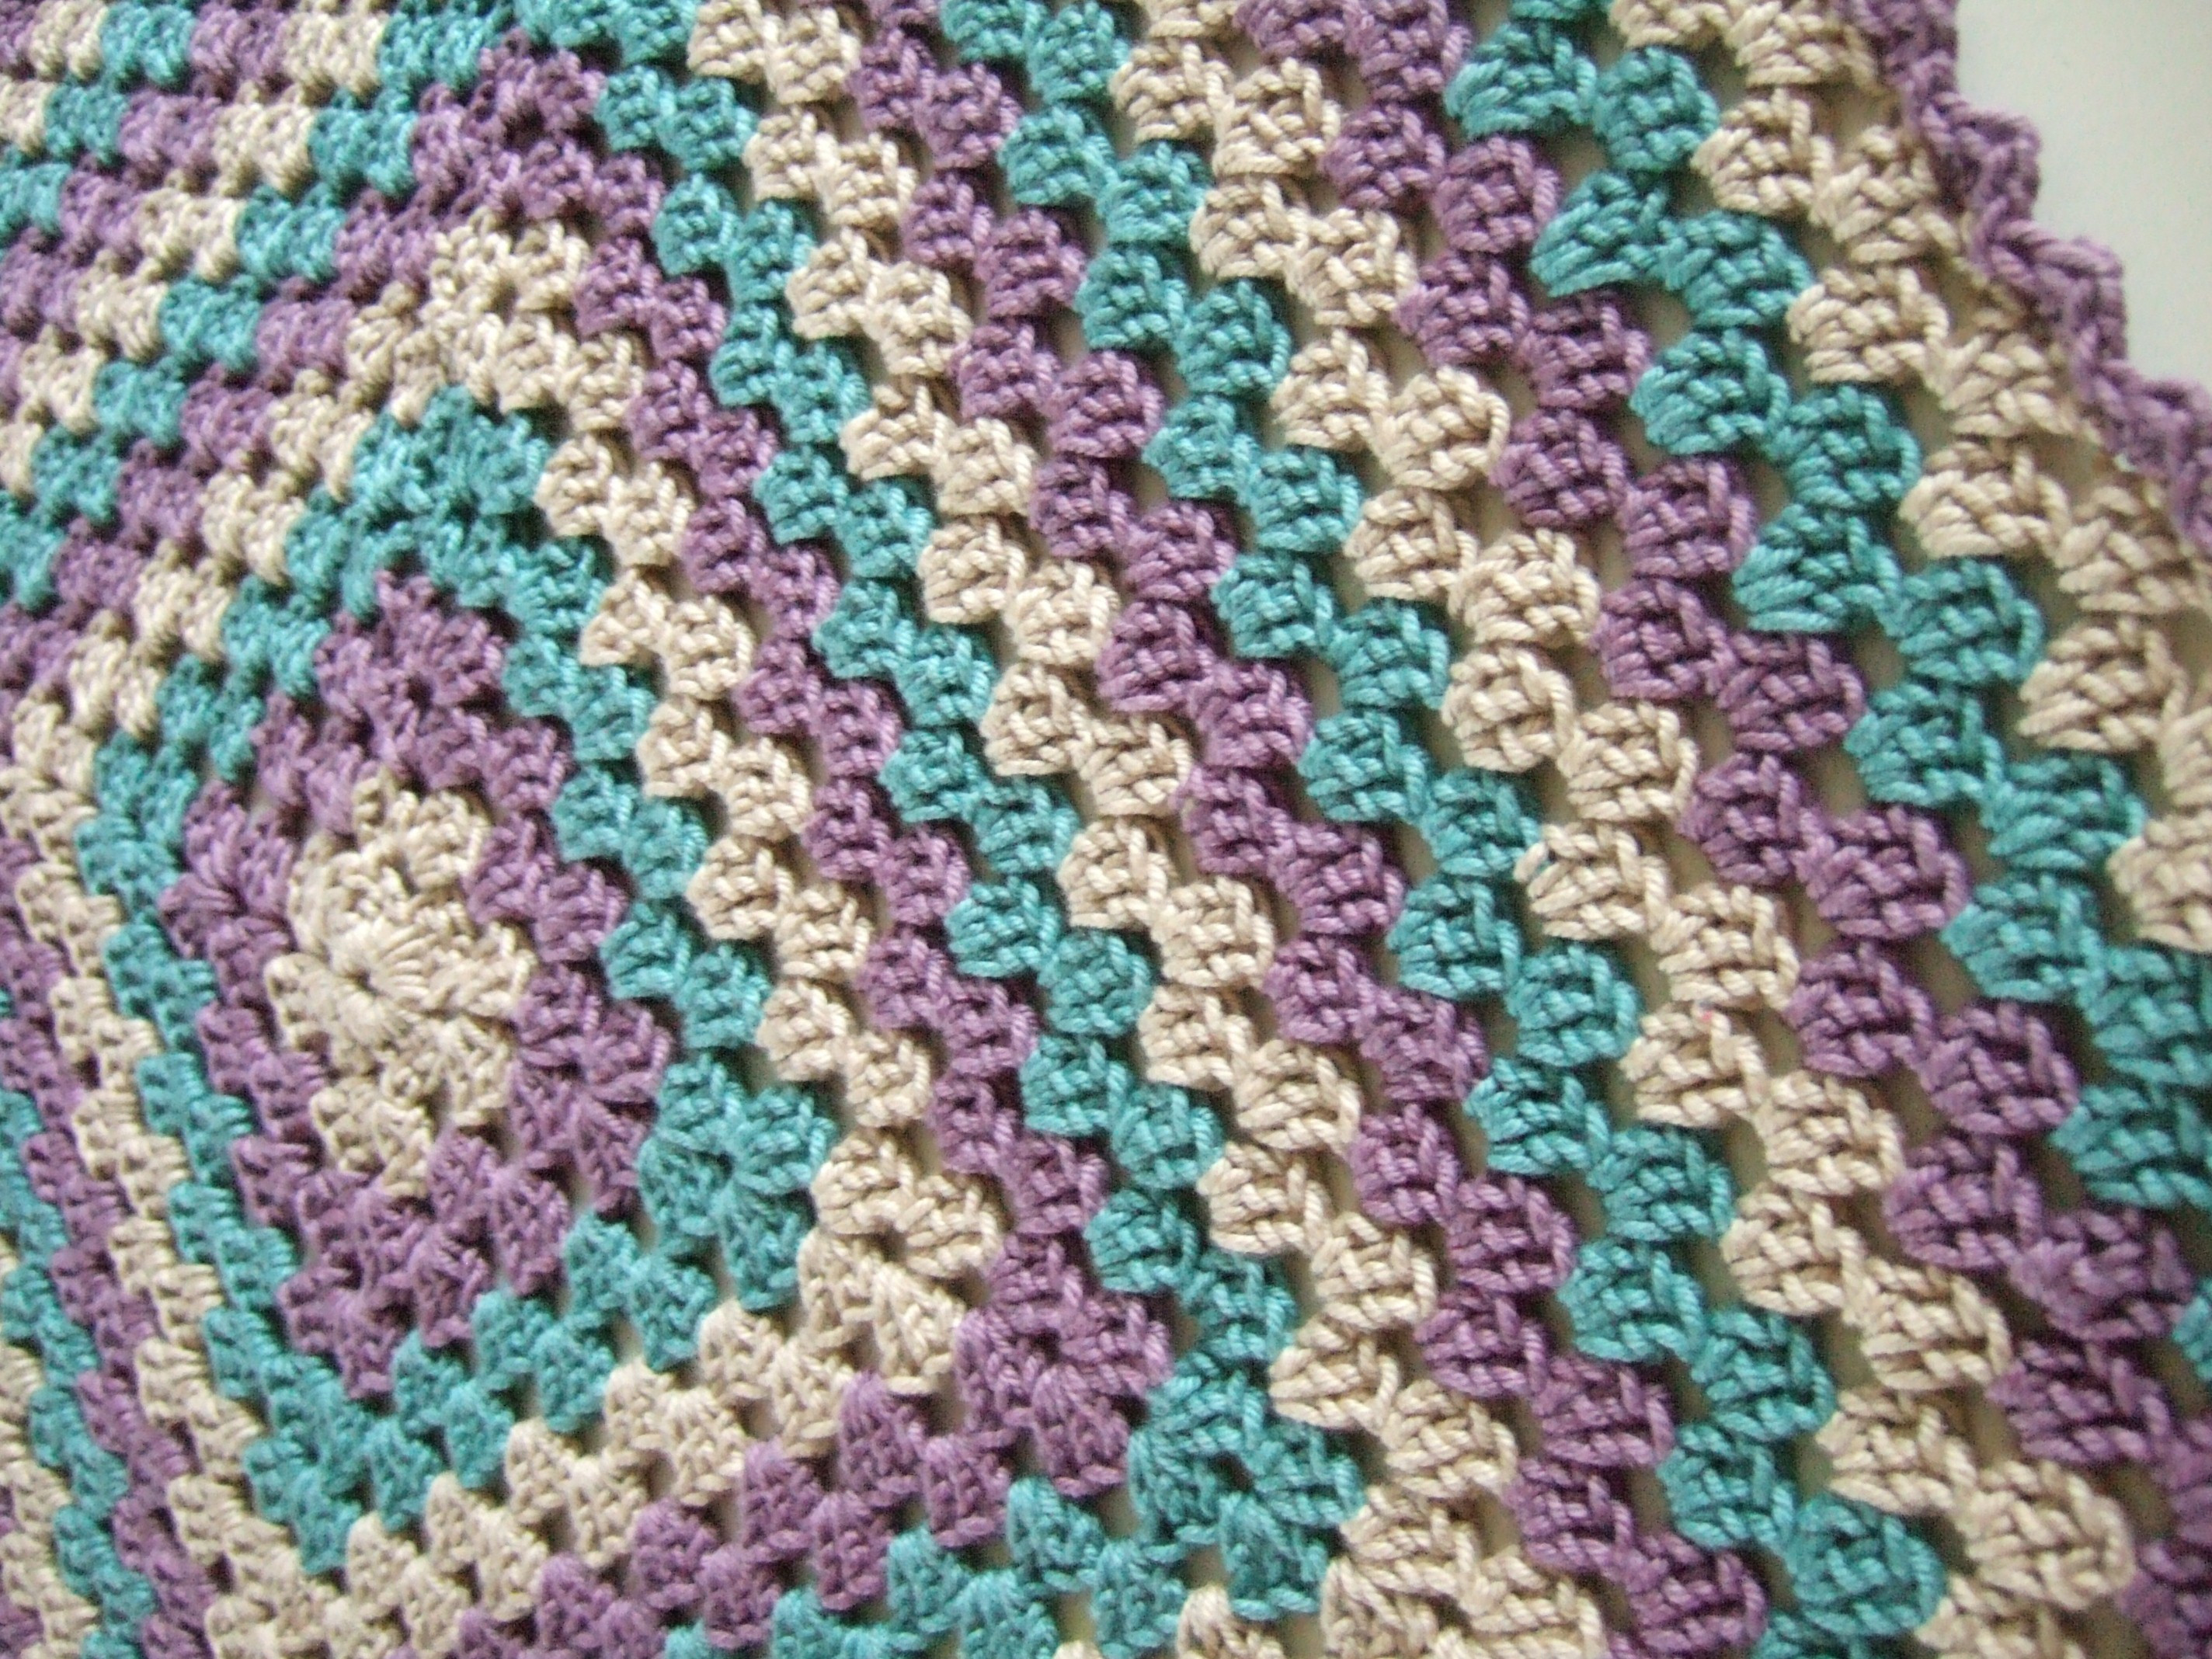 Crochet Baby Blanket Patterns for Beginners Luxury Easy Crochet Baby Blanket Patterns for Beginners Of Innovative 45 Pics Crochet Baby Blanket Patterns for Beginners